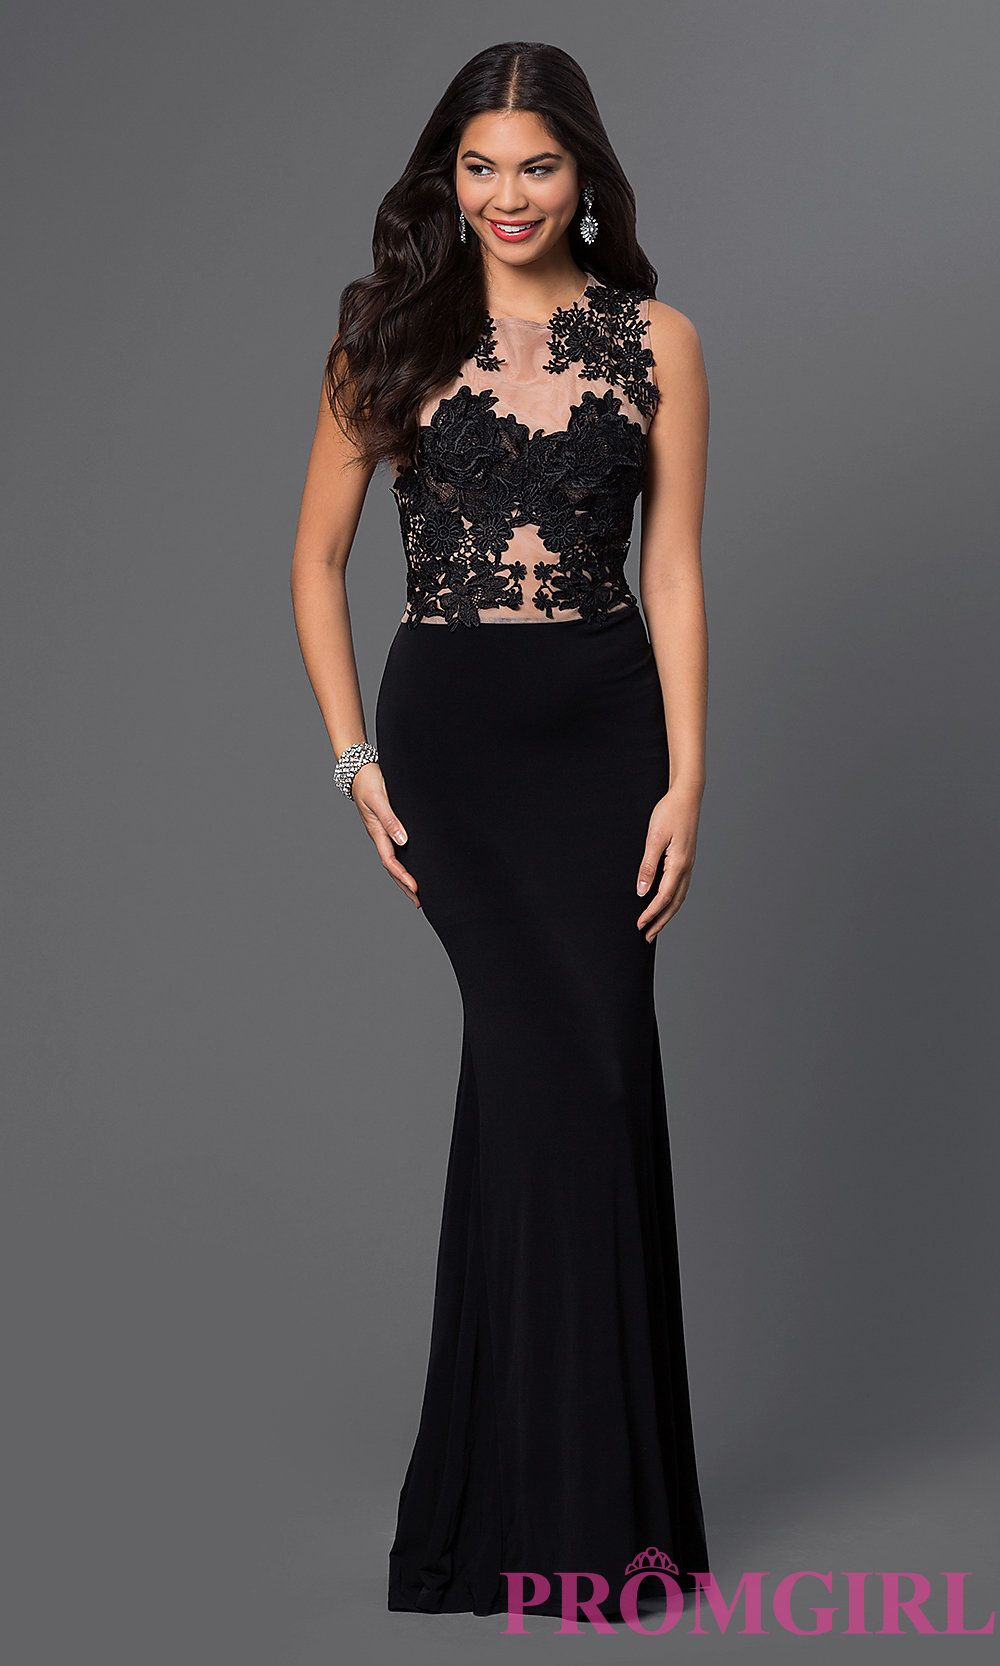 Dress lace dress long dress black dress sequins lace blue dress - Shop Long Sleeveless Illusion Evening Gowns At Promgirl Floor Length Sleeveless Dresses For Prom And Formals